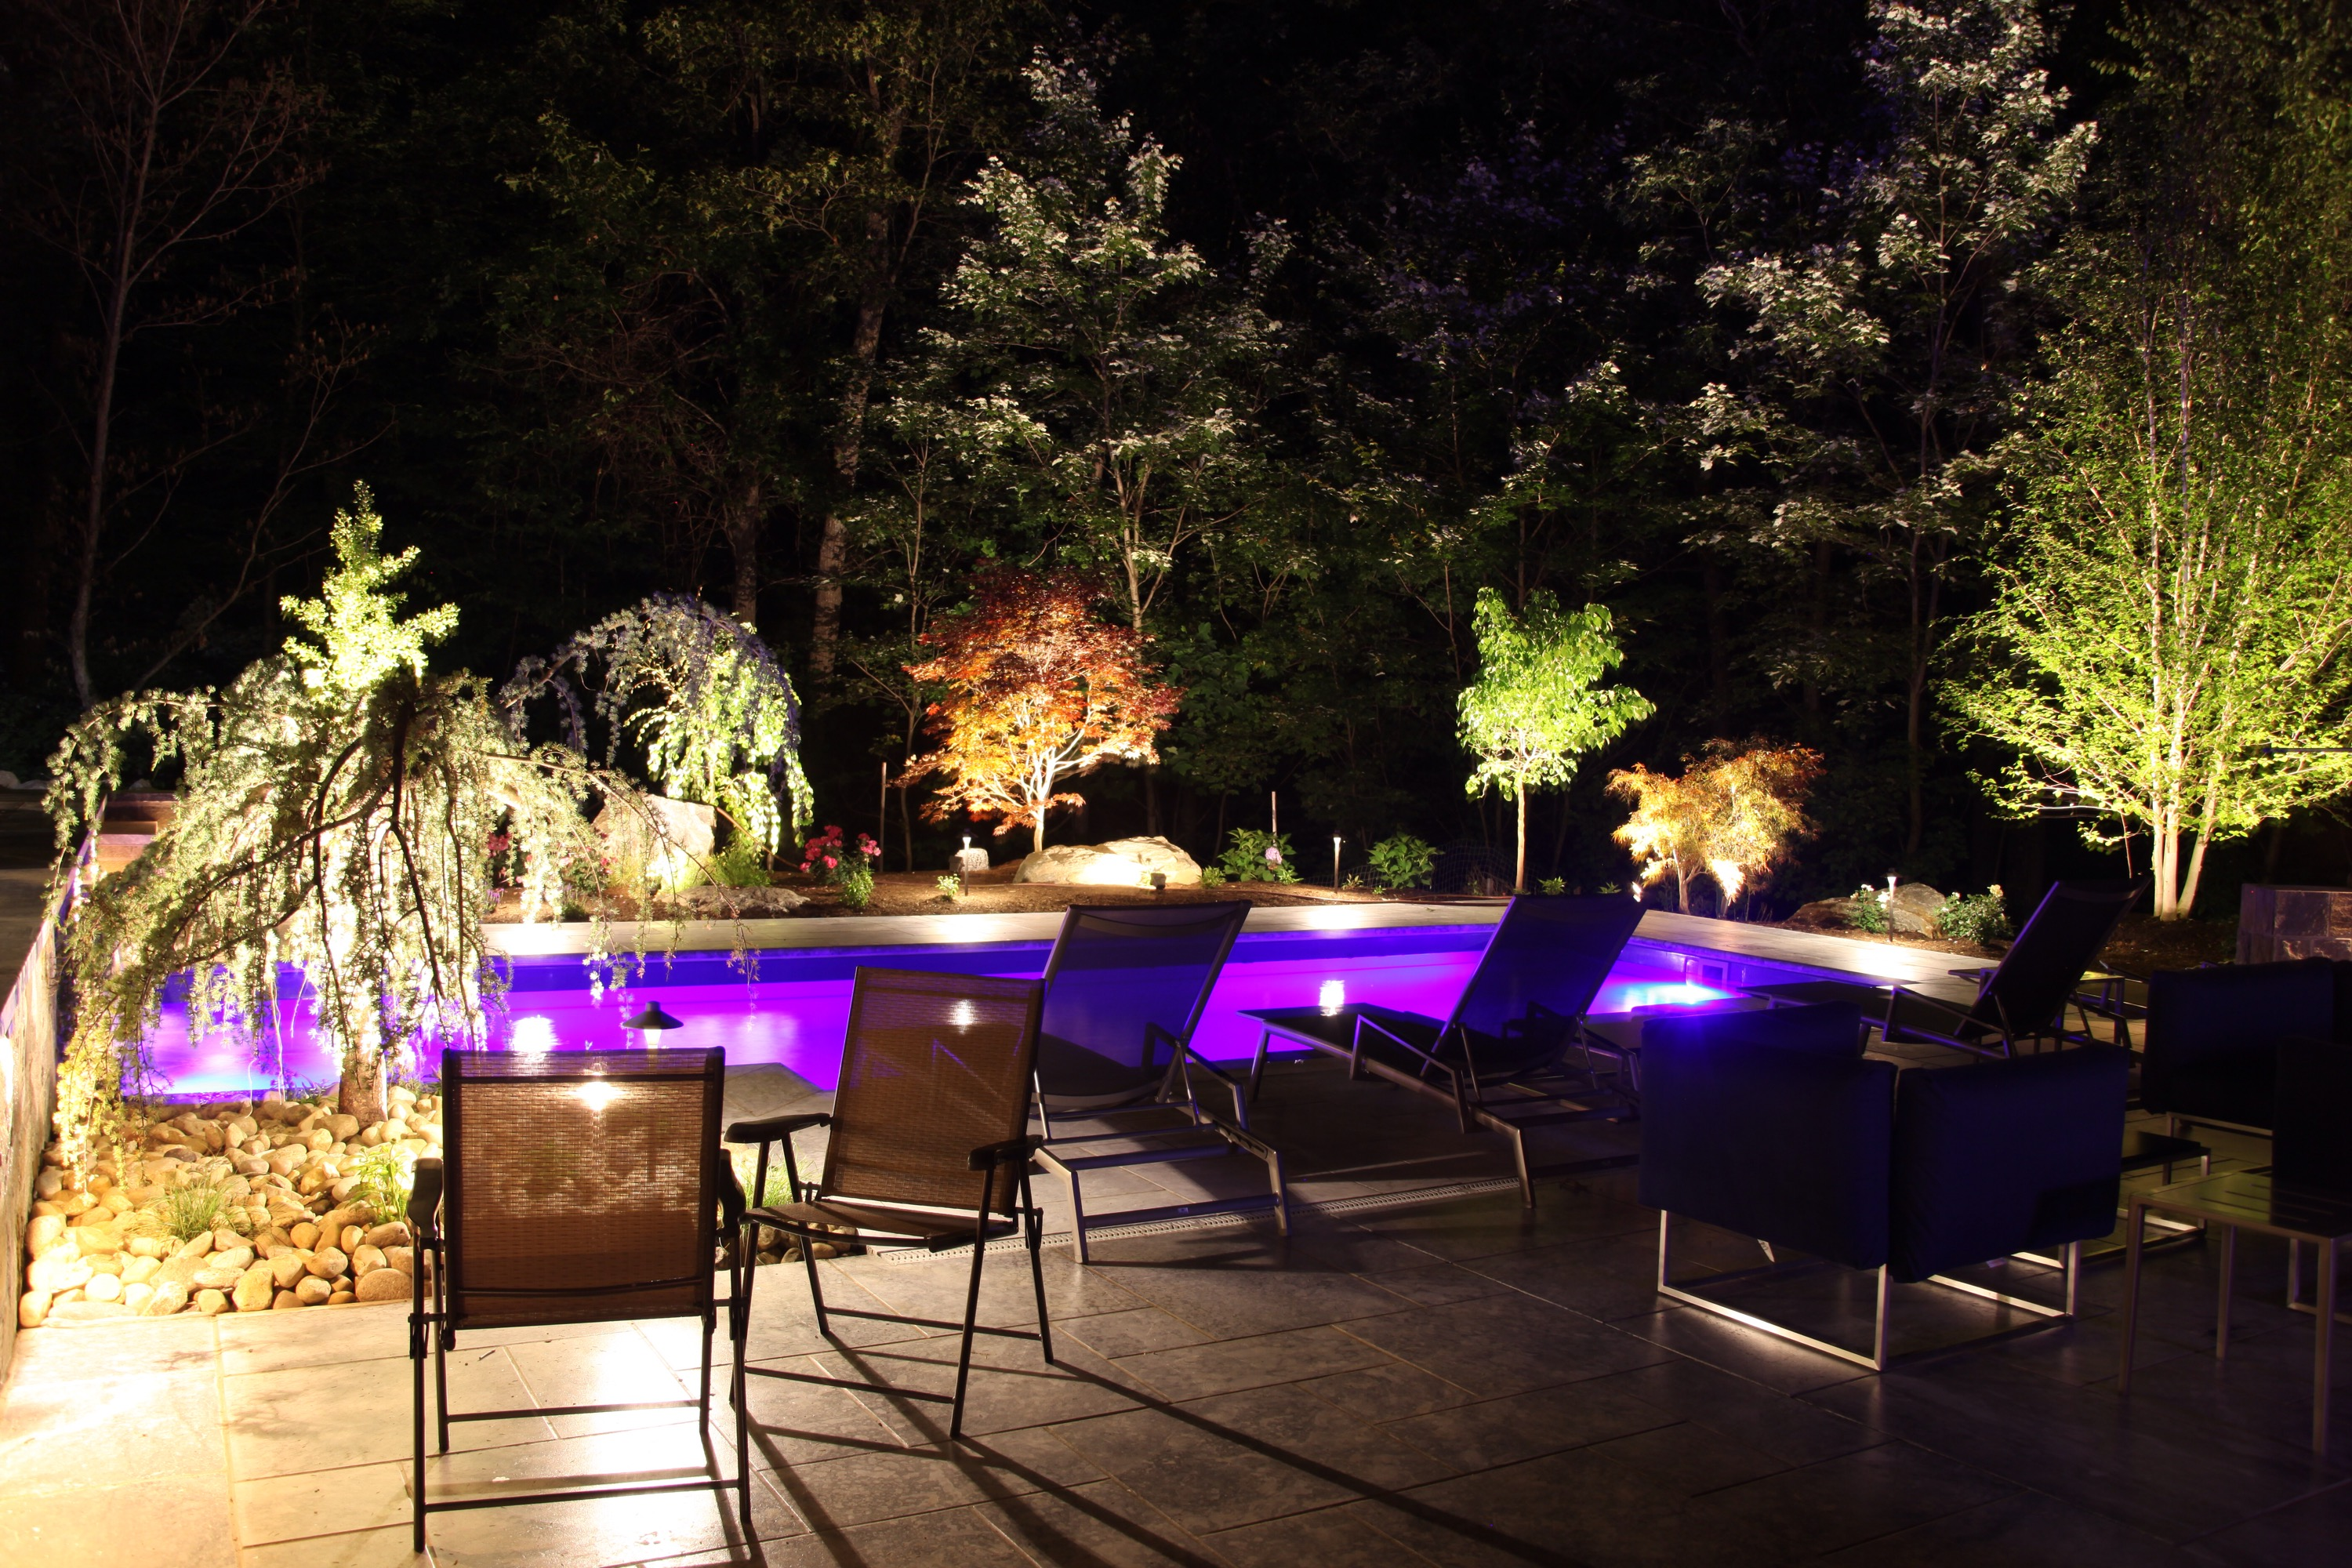 Outdoor living fabulously designer can light it up fabulous the 201501img3065g aloadofball Gallery